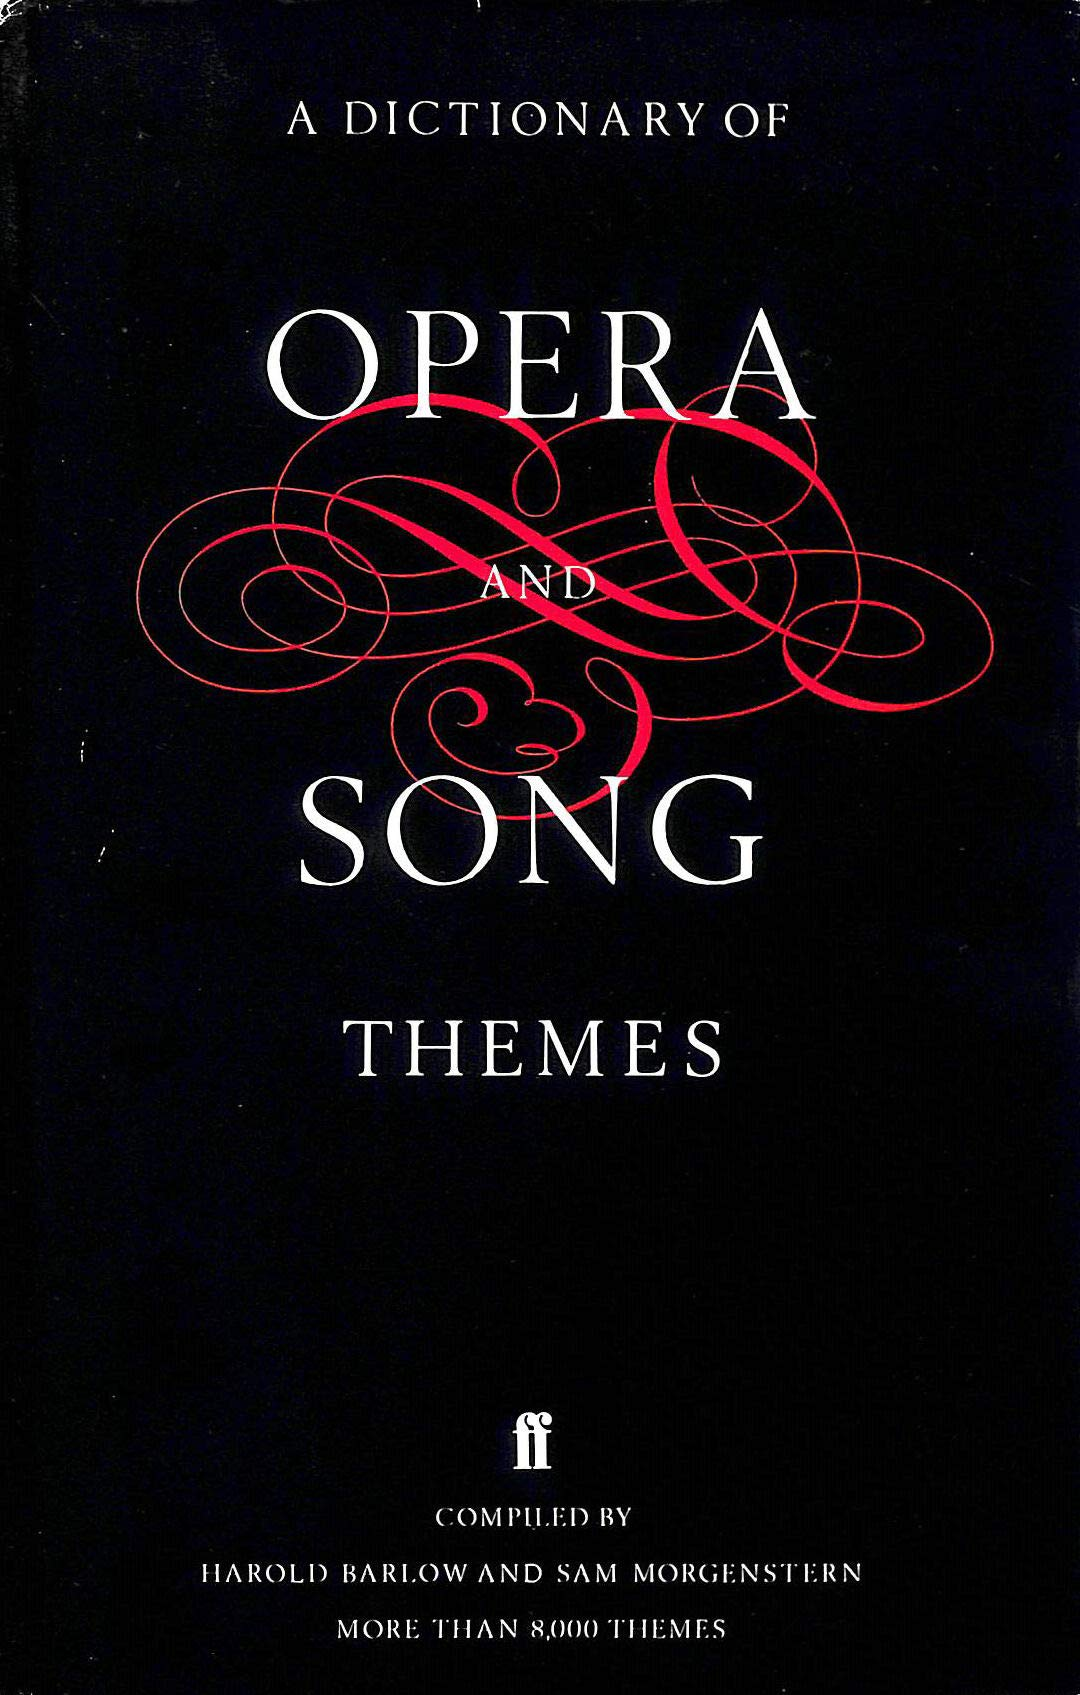 A Dictionary of Opera and Song Themes: Amazon co uk: Harold